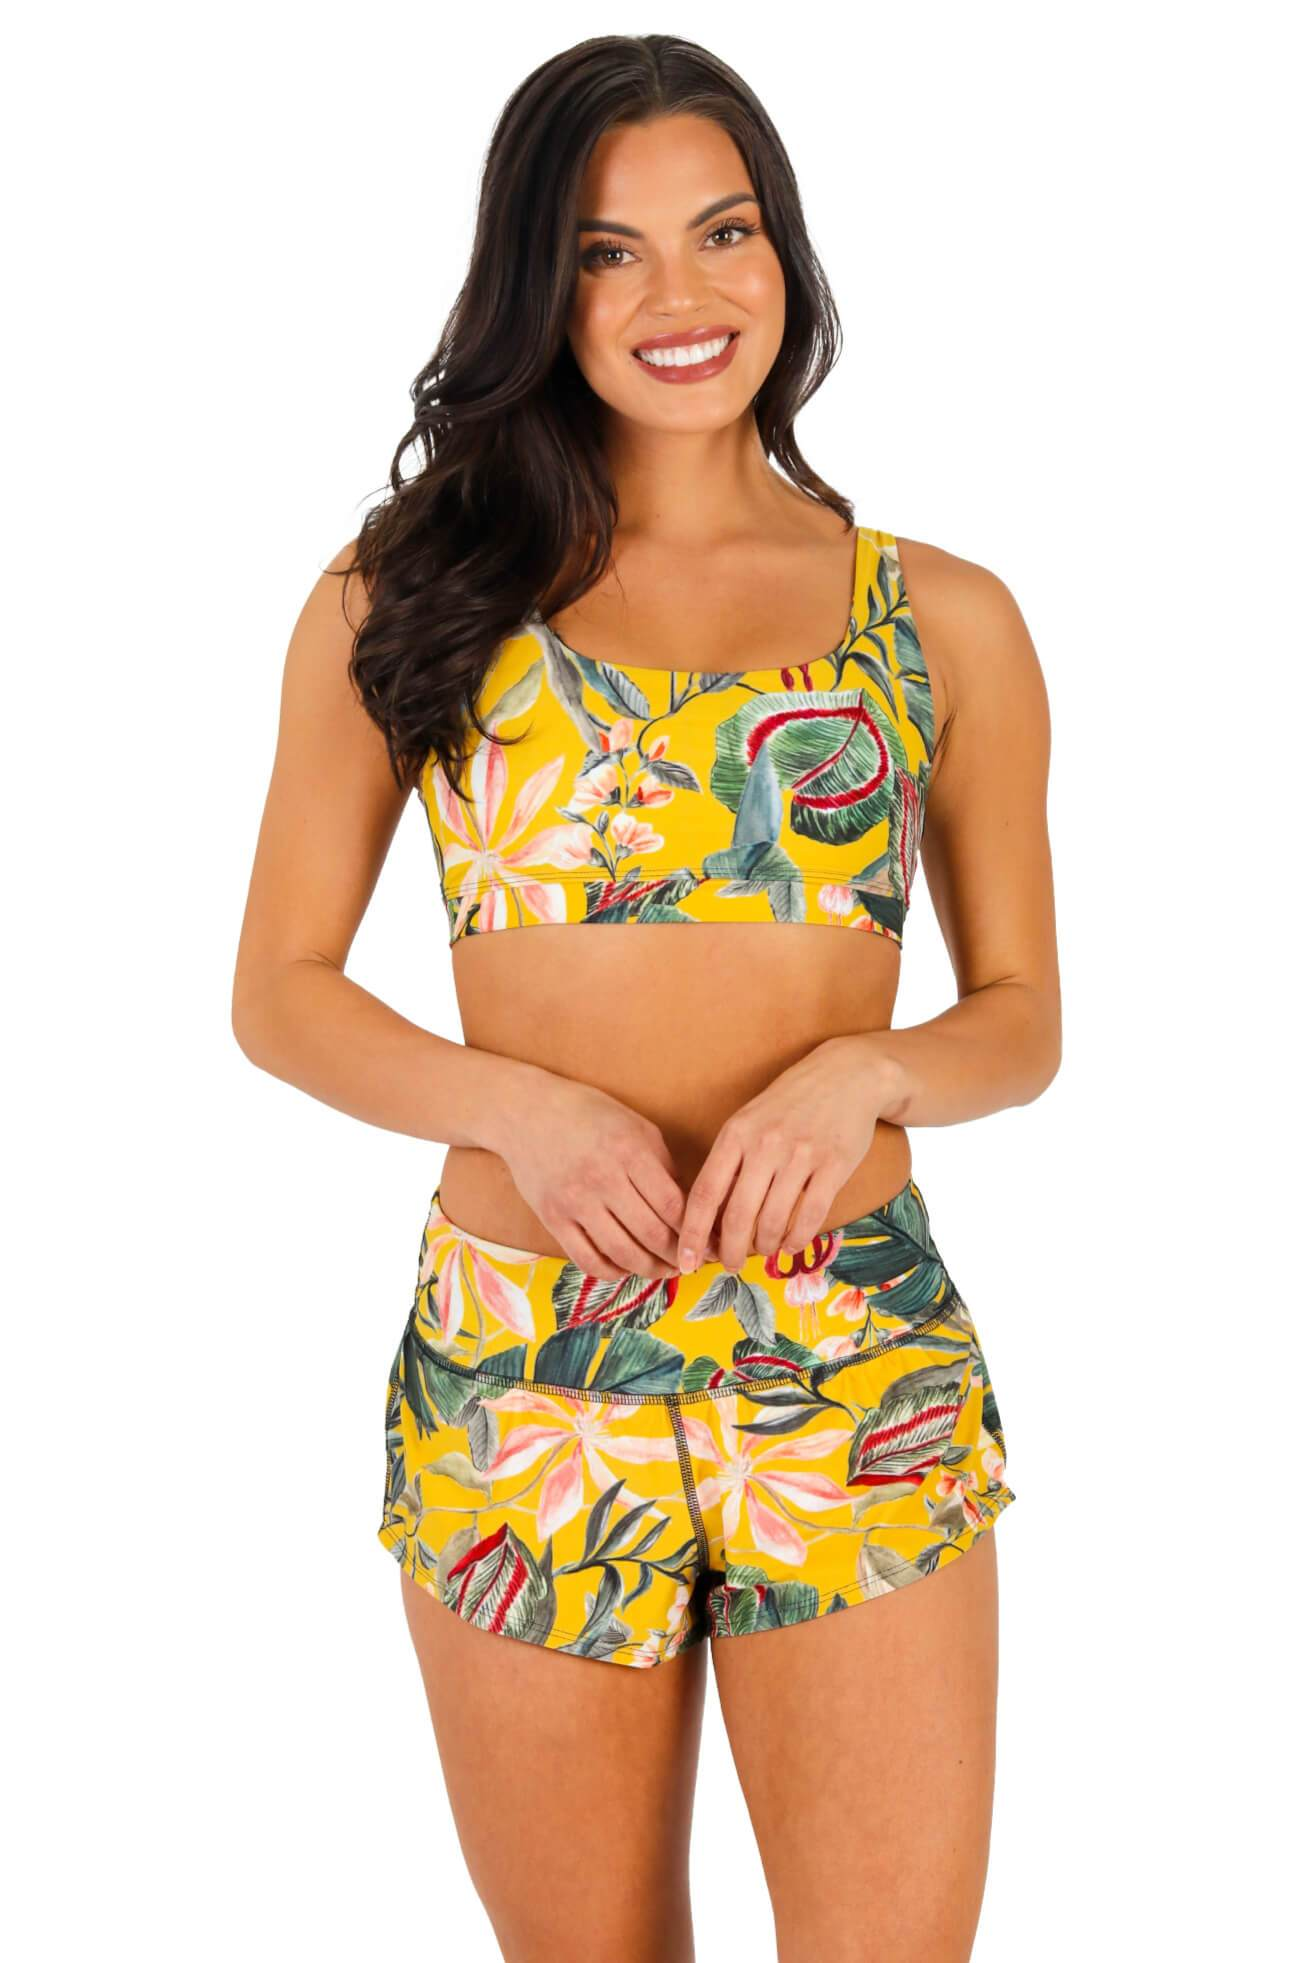 Yoga Democracy Women's Eco-friendly flow everyday running Shorts with 3 inch inseam and low-rise waistband in Curry Up yellow floral color print made from post consumer recycled plastics